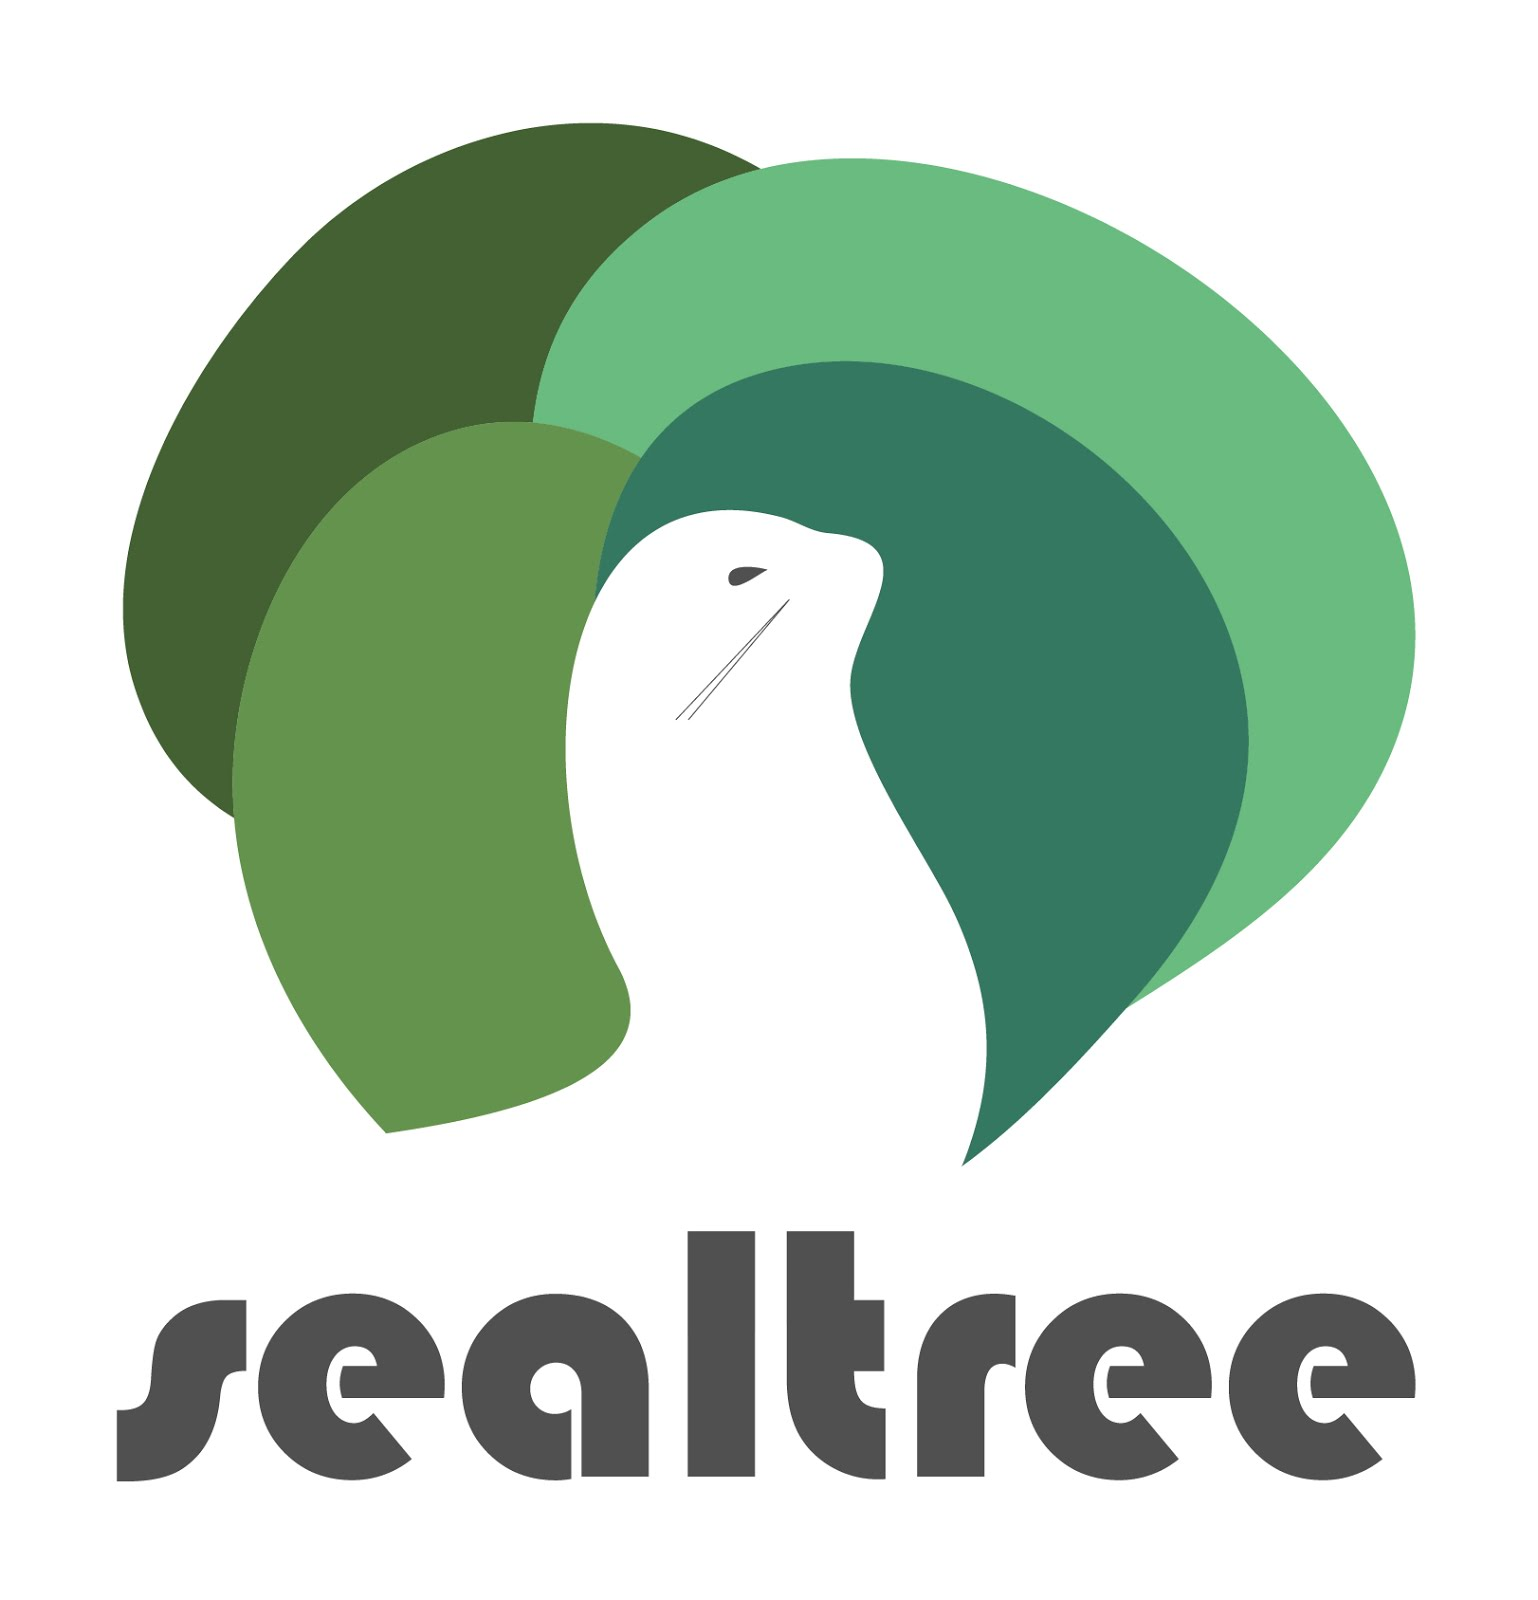 Sealtree Consulting